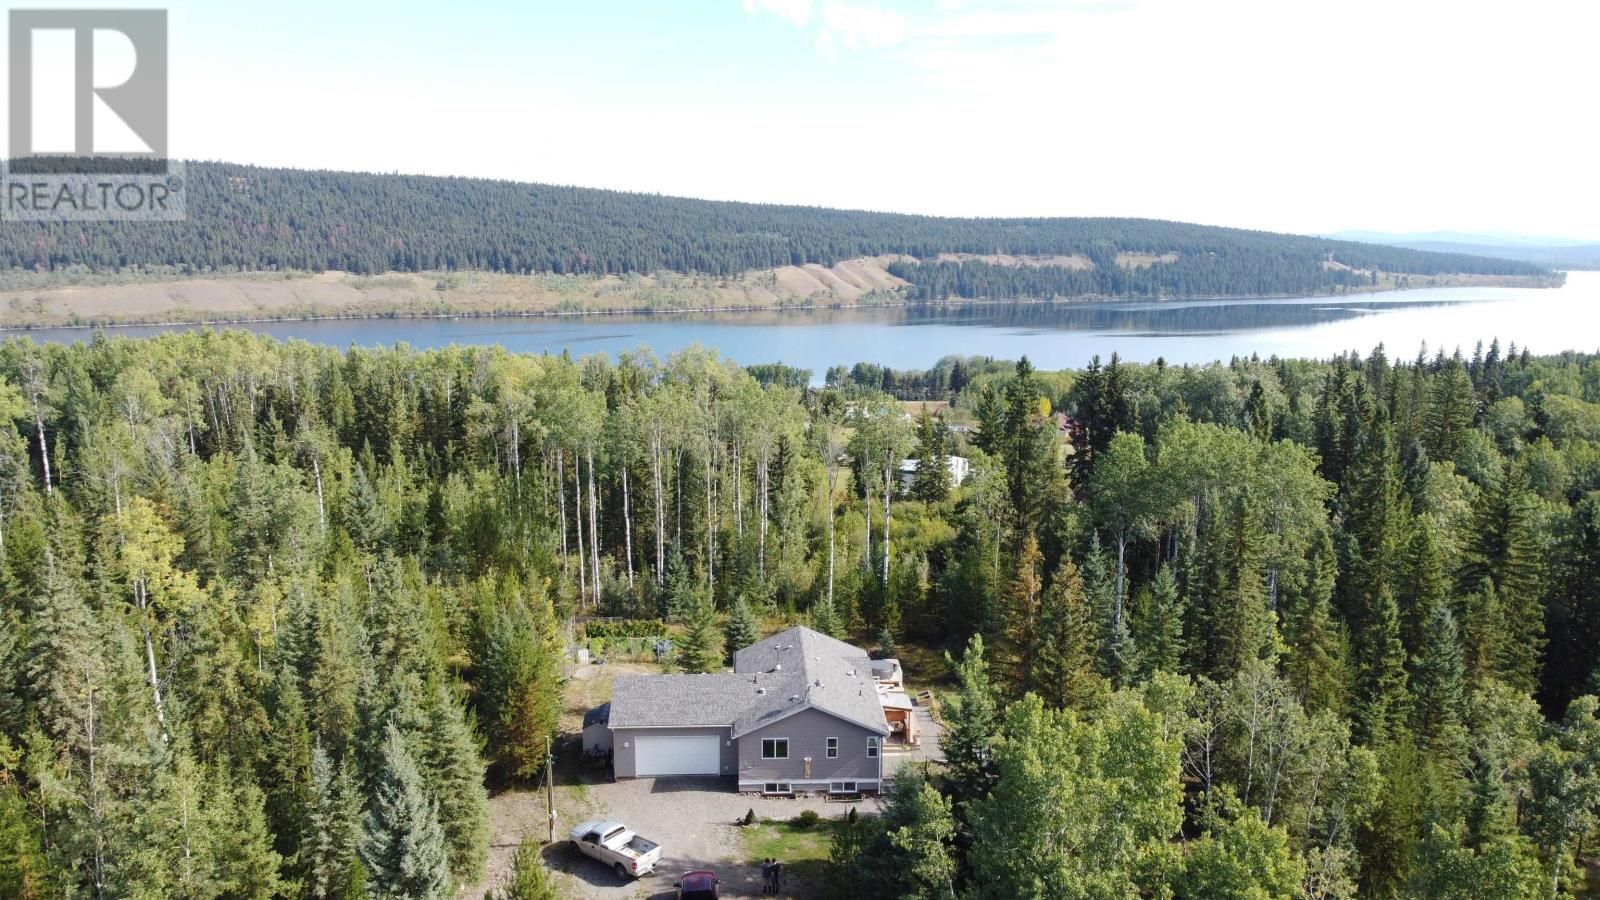 Main Photo: 6479 UNICORN ROAD in Horse Lake: House for sale : MLS®# R2616776